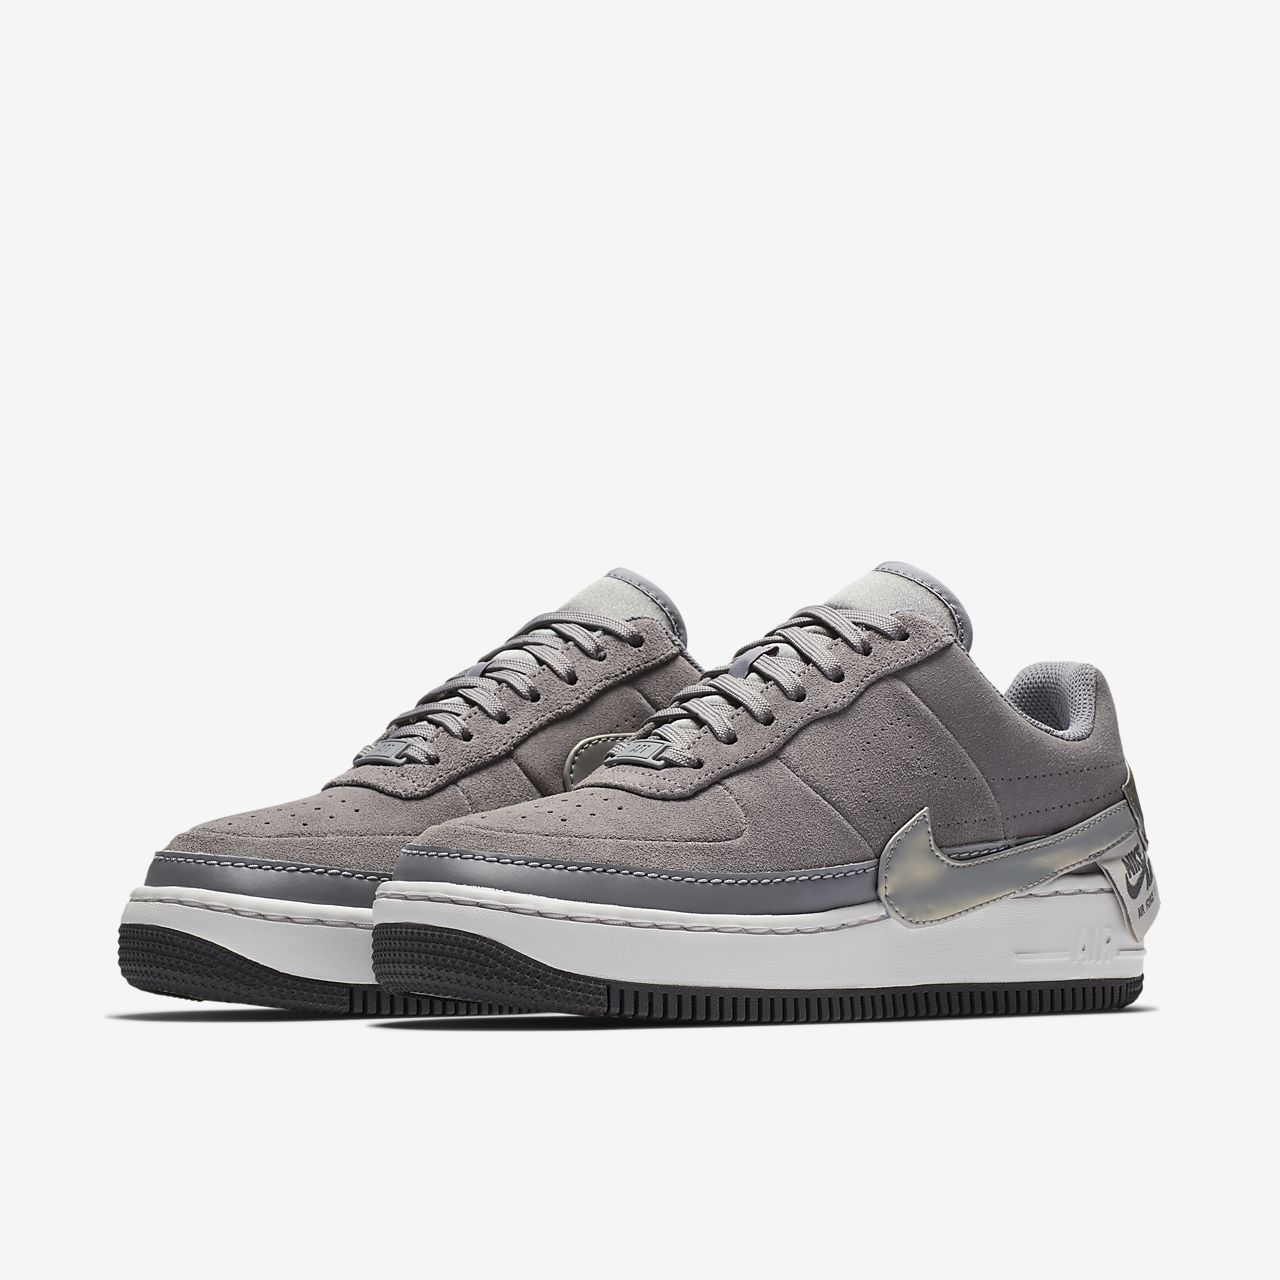 562432a3bbb Nike Air Force 1 Jester Shoe. Nike.com HR